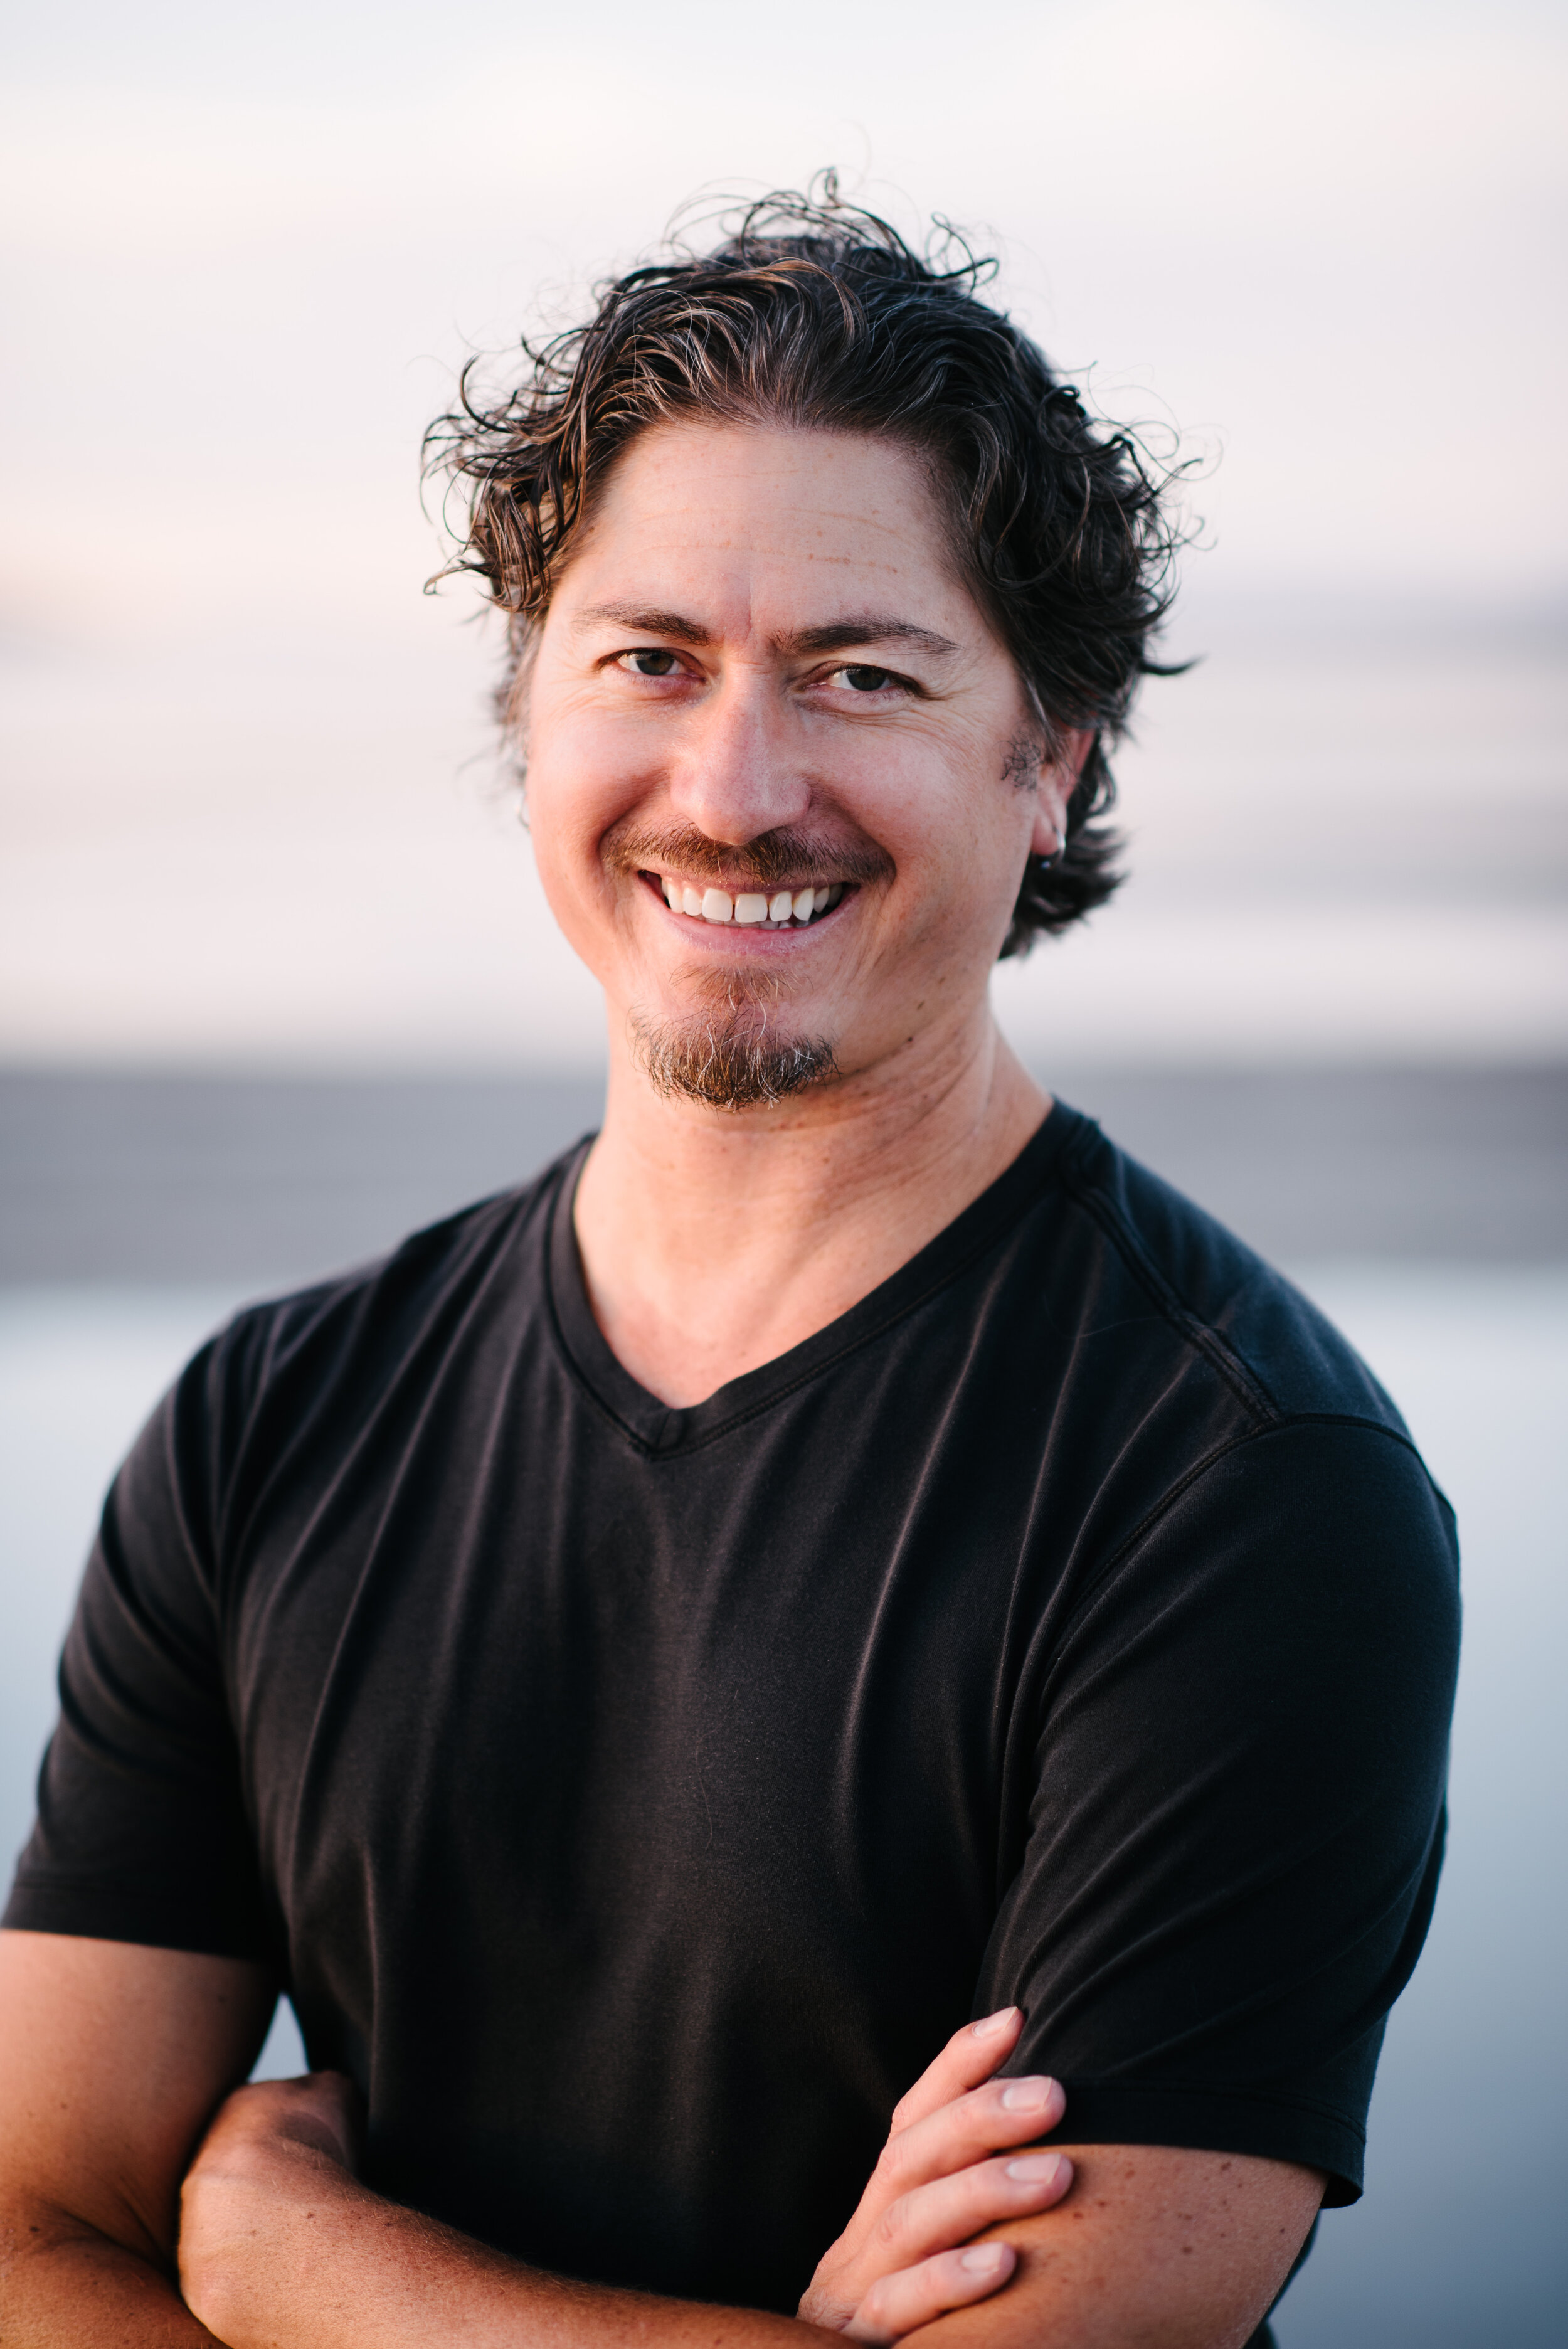 Scott Moore (E-RYT 500, YACEP, RYS) has been teaching yoga since 2003 and Yoga Nidra since 2008. His online Yoga Nidra teacher training has gained global attention and over 30,000 people have enjoyed his Yoga Nidra recordings on the Insight Meditation app. Scott was a professor of an accredited class, Yoga for Wellness, at Westminster College for 9 years and has also created programming and curriculum which incorporates Yoga Nidra for many hospitals and treatment facilities. Scott has also worked with many world-renowned performers and athletes to achieve optimal performance using Yoga Nidra. Scott writes for and has been featured in Yoga Journal, Mantra Magazine, Origin Magazine, Medium, Conscious Life News, Sivana East, and his own blog at scottmooreyoga.com/blog. Scott loves to travel to offer retreats, trainings, and workshops. Scott is currently living with his wife and son in Southern France.